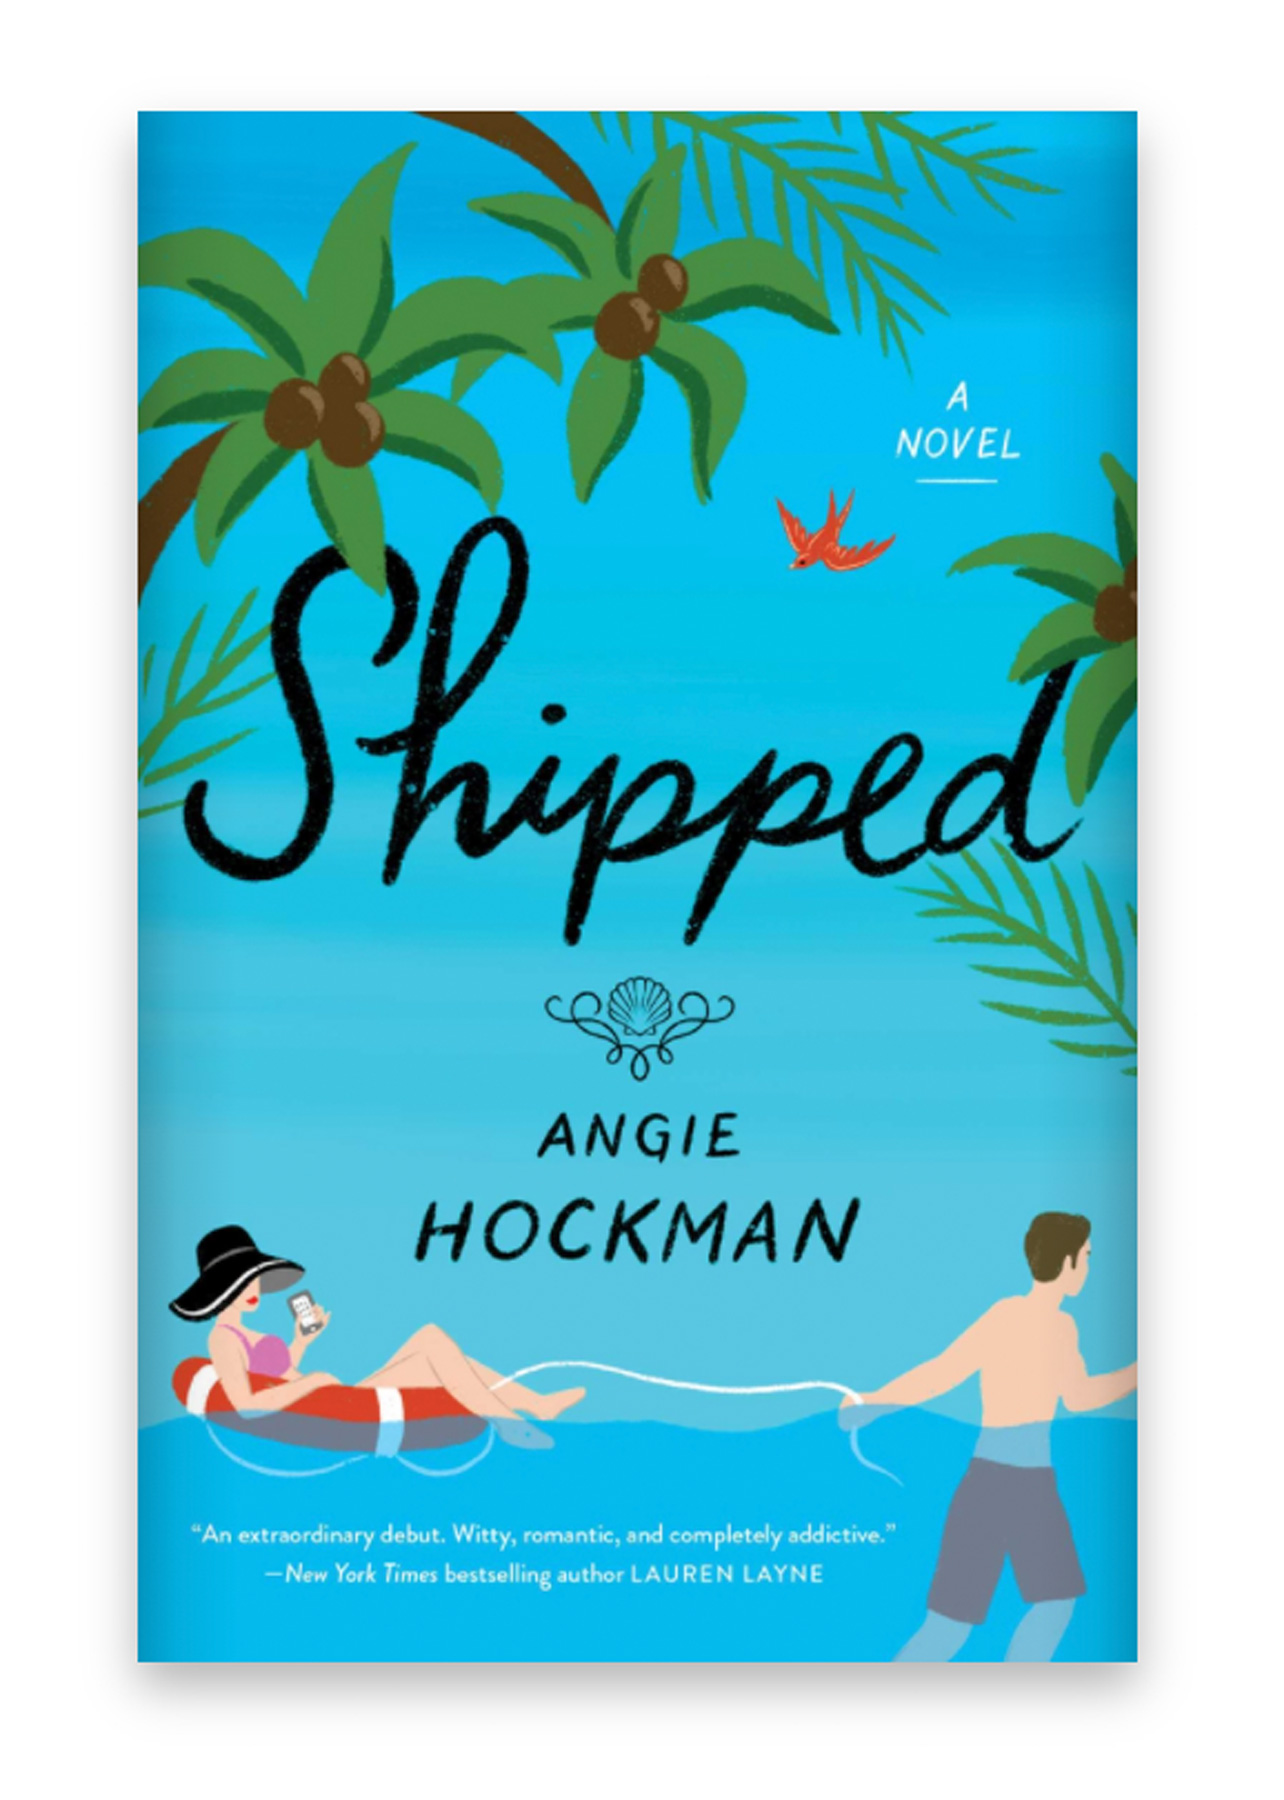 Best Spring Books to Read 2021: Shipped by Angie Hockman